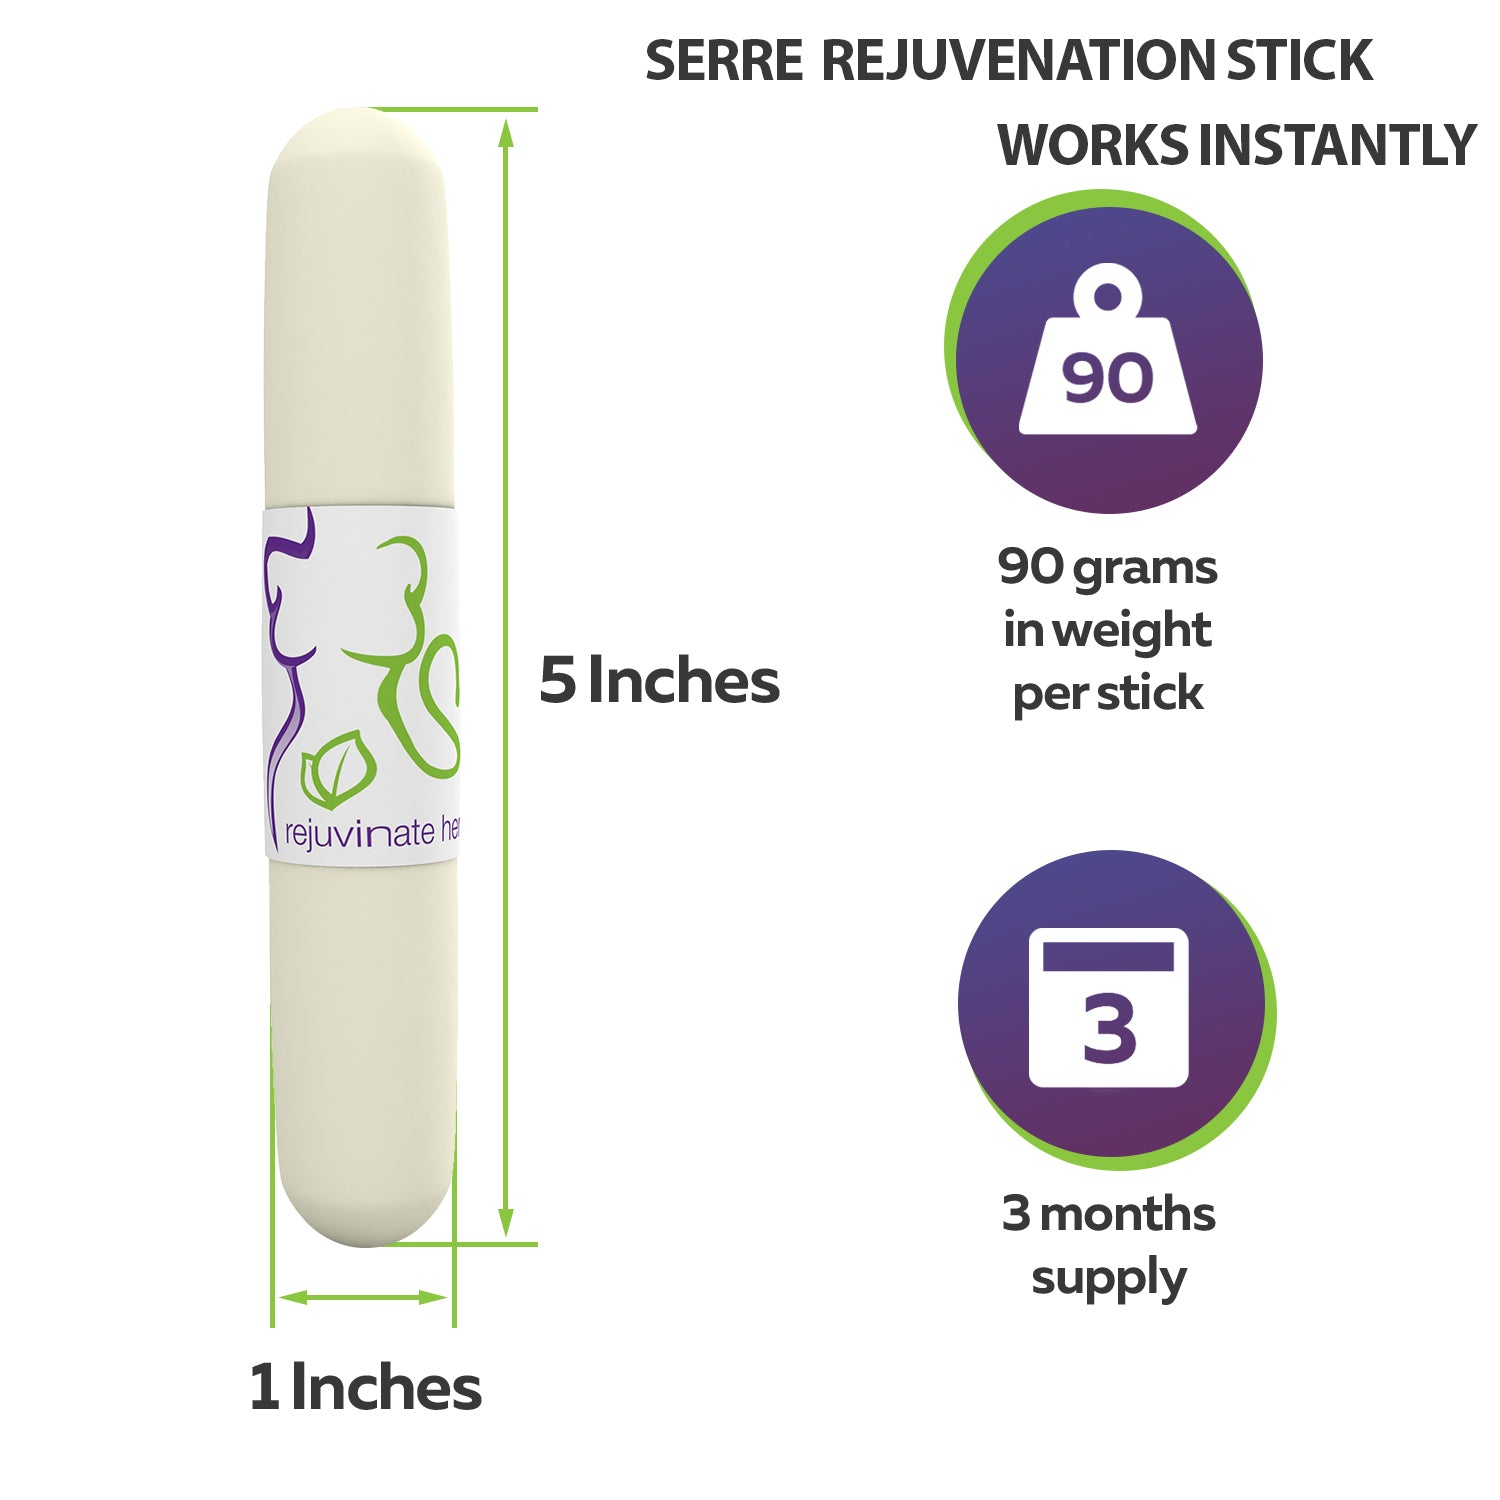 Serre Rejuvenation Stick Works Instantly